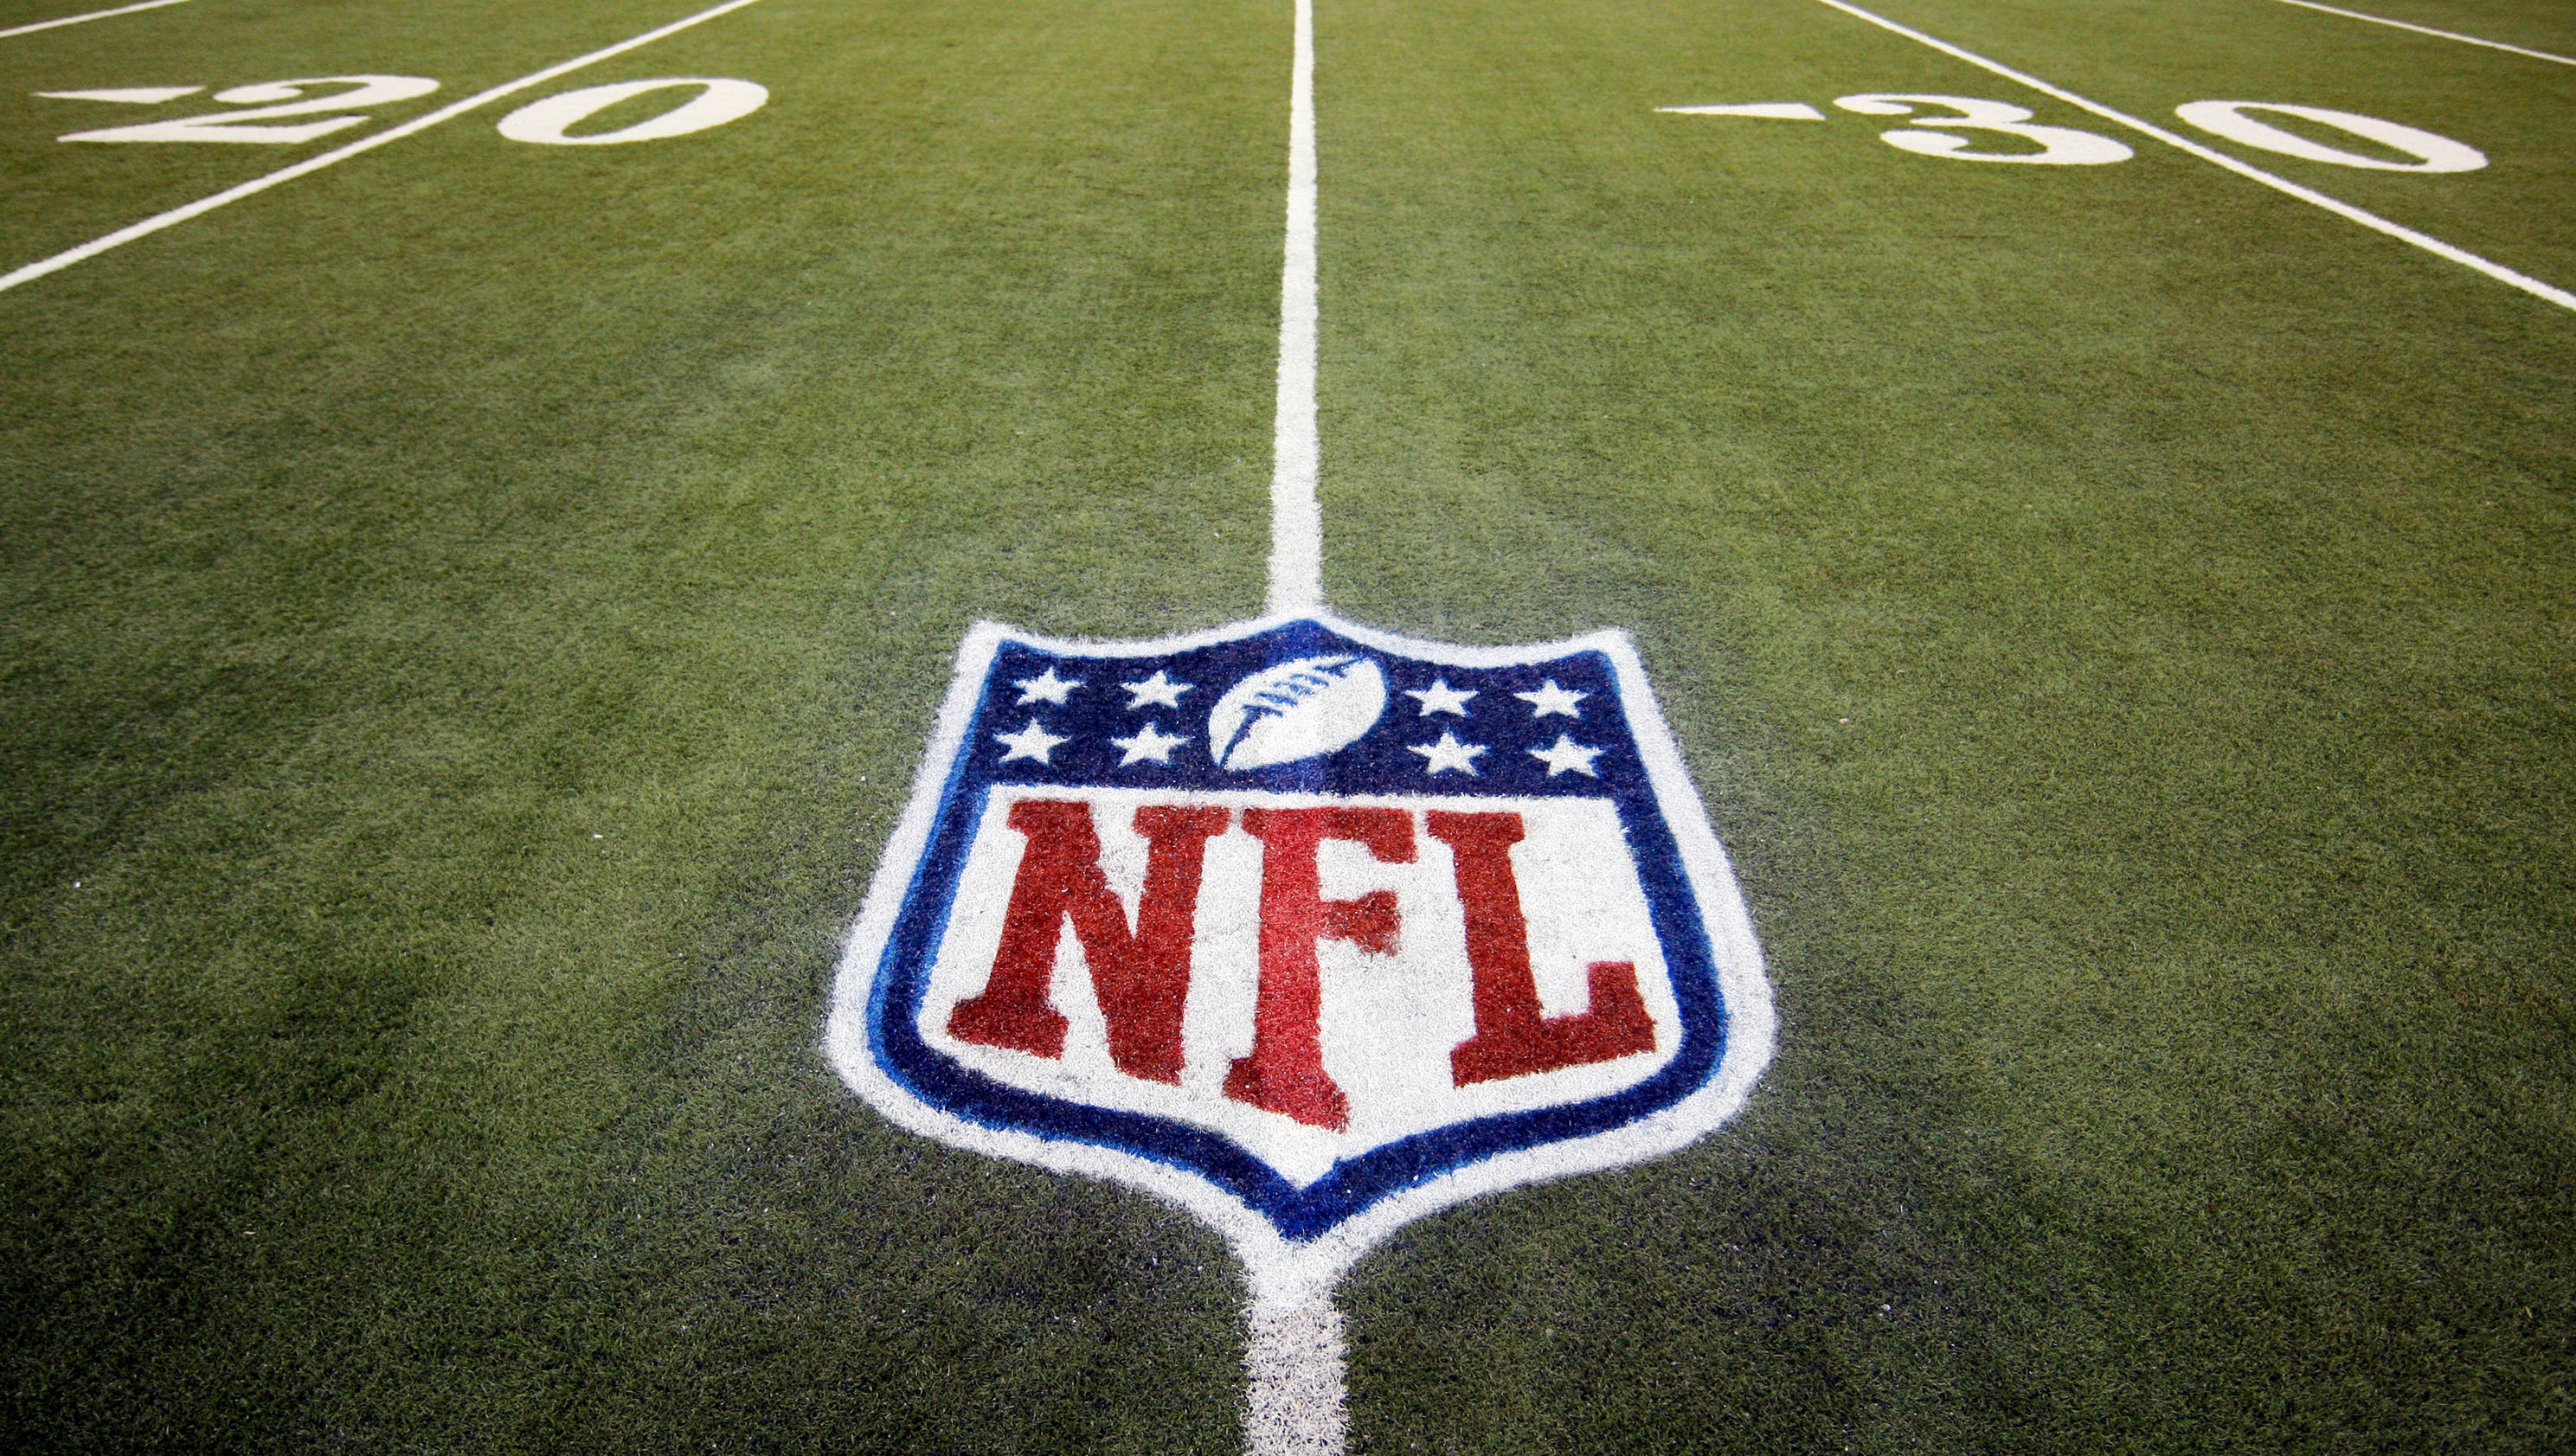 1409939135000-Google-NFL-Football-GIO4UN8LL.1 Job Form Bd on work order, home pak, candidate interview,